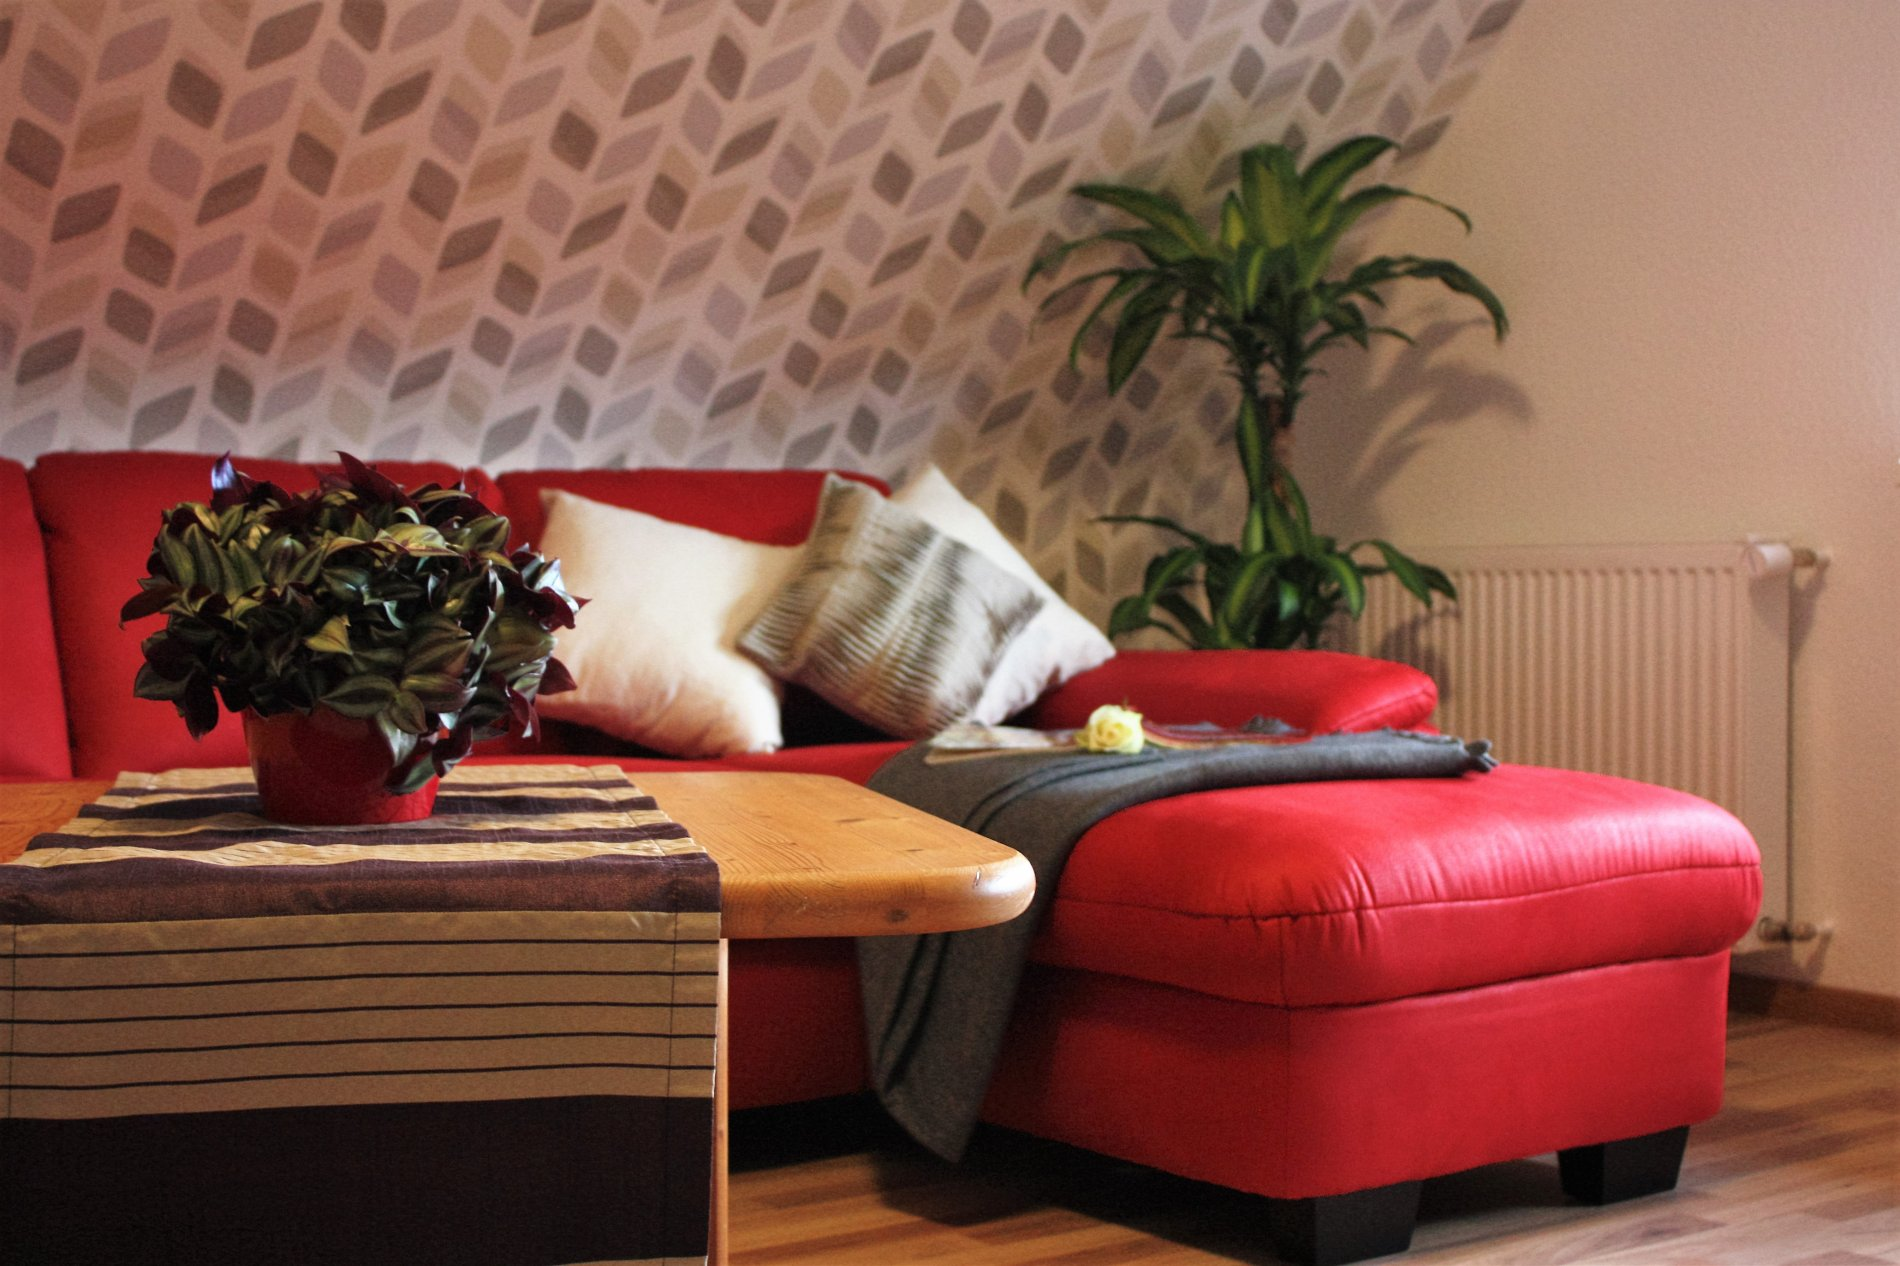 Rote Couch mit gemusterter Tapete